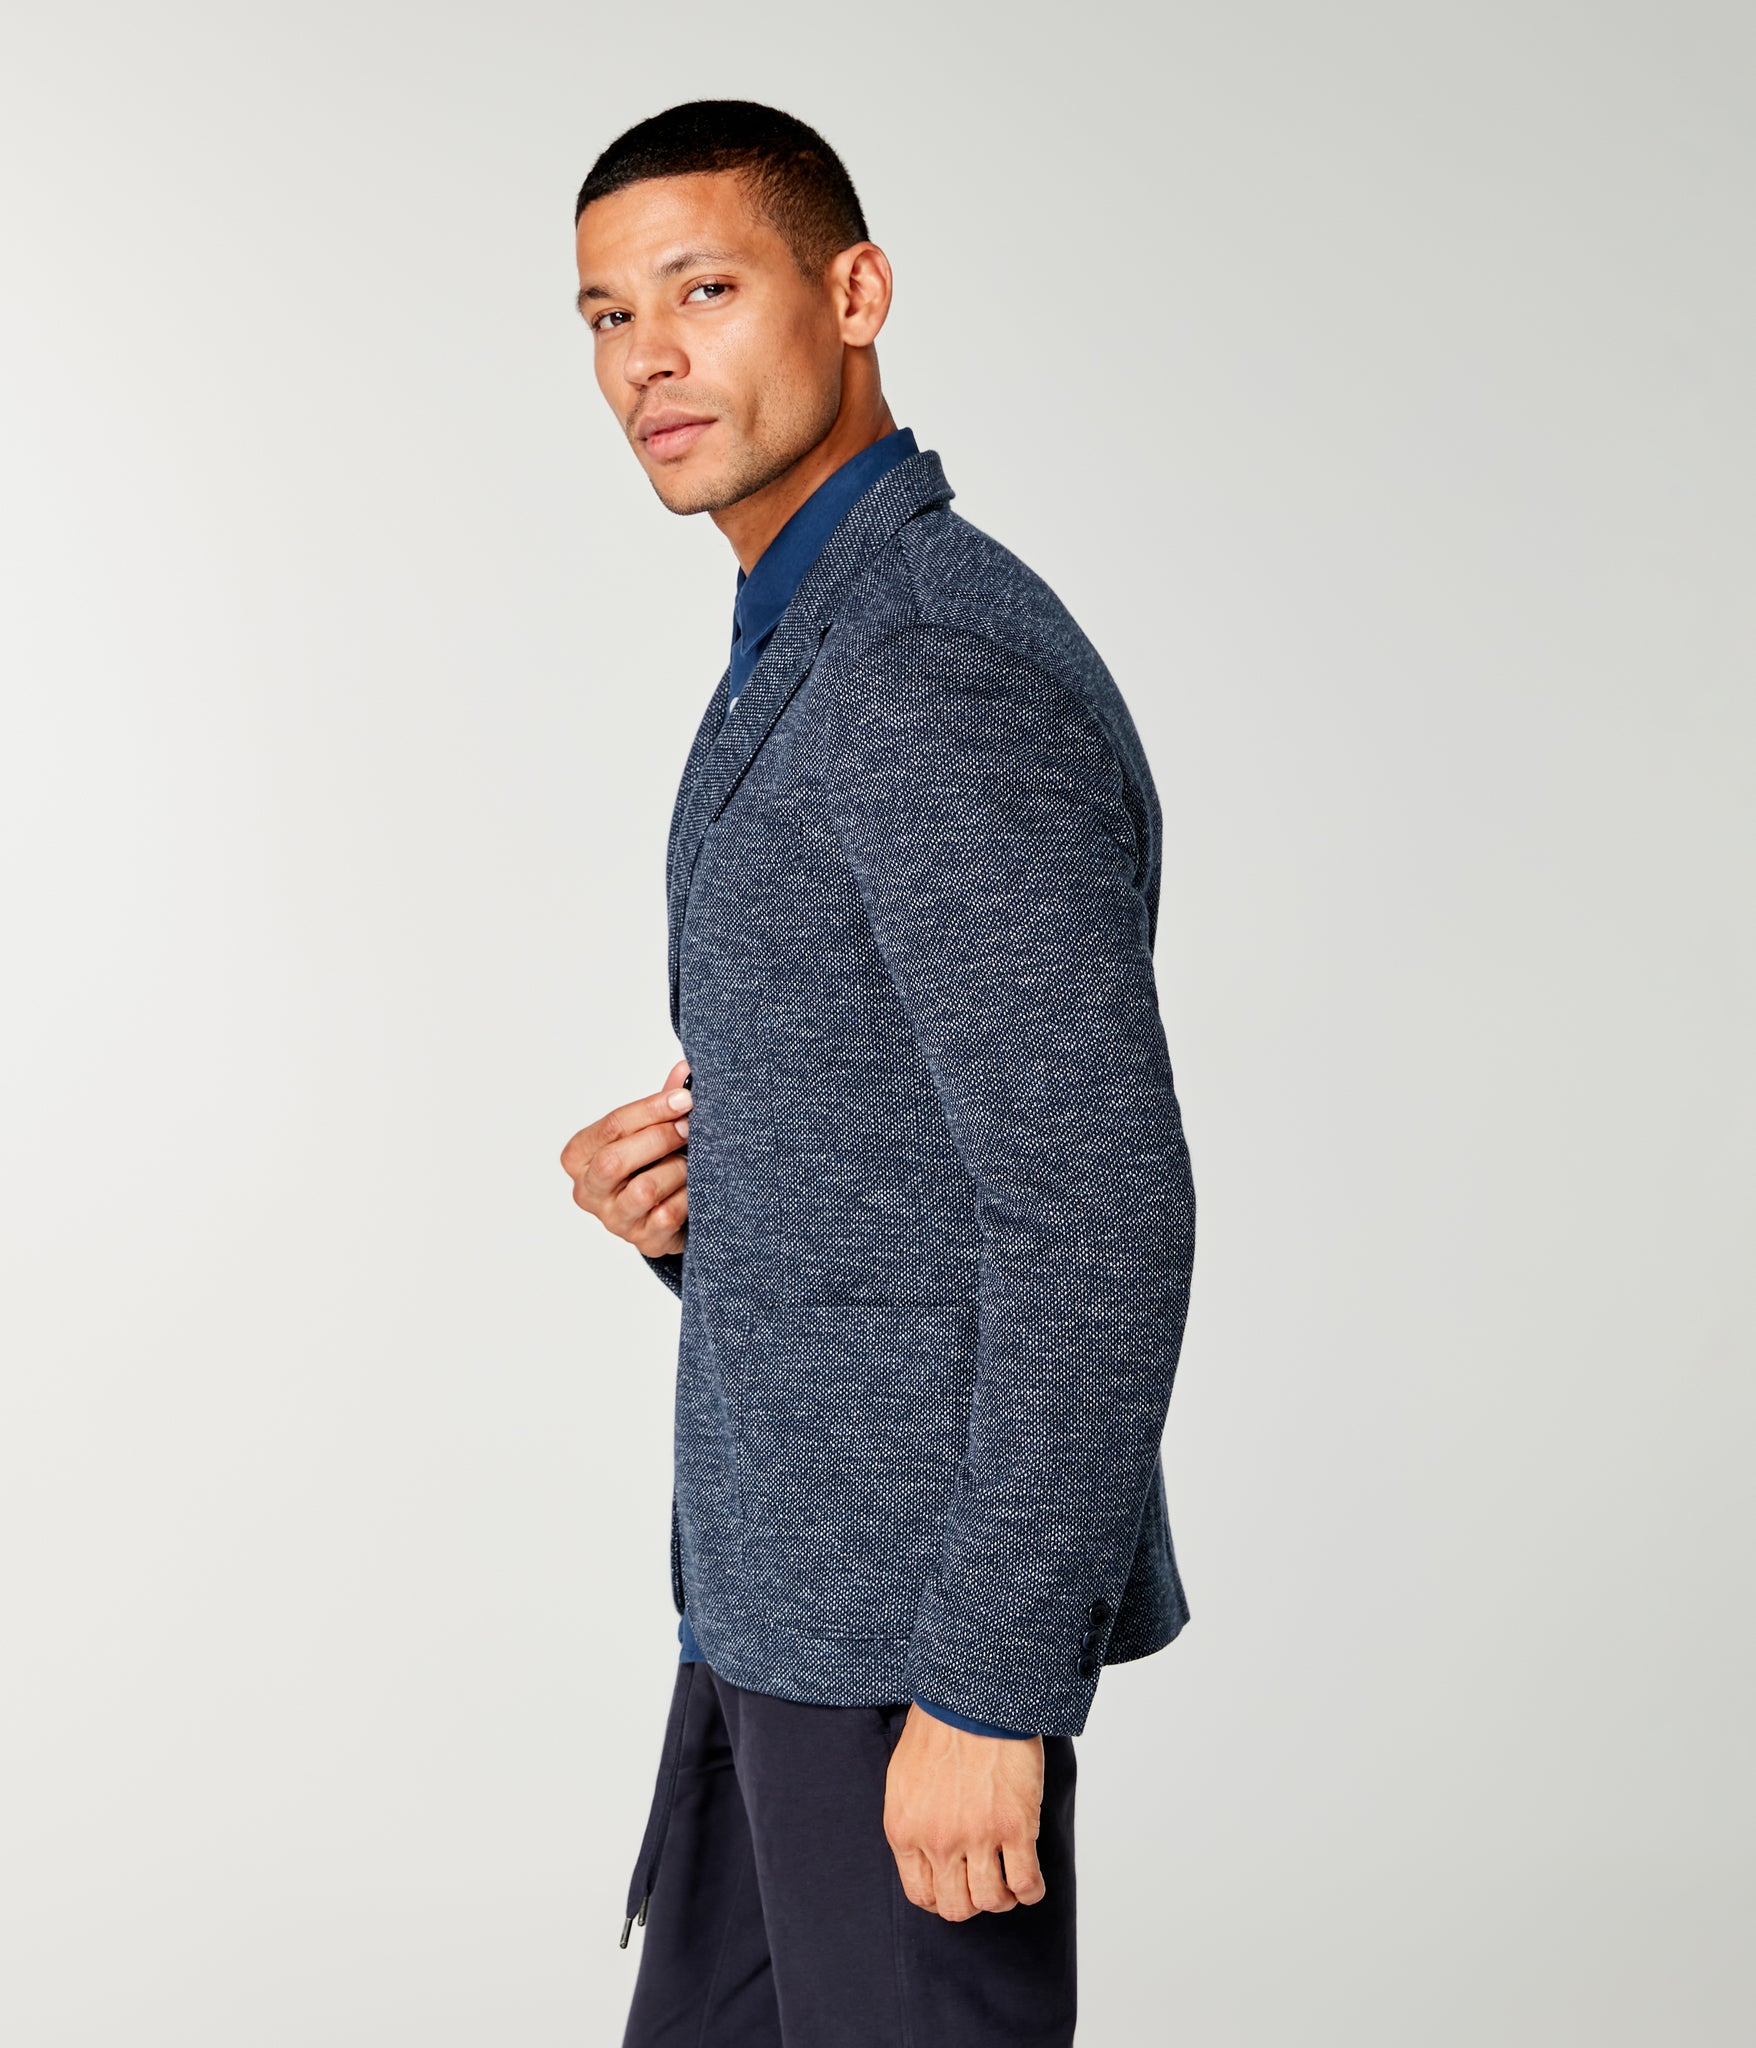 Bi-Color Birdseye Soft Blazer - Sky Captain